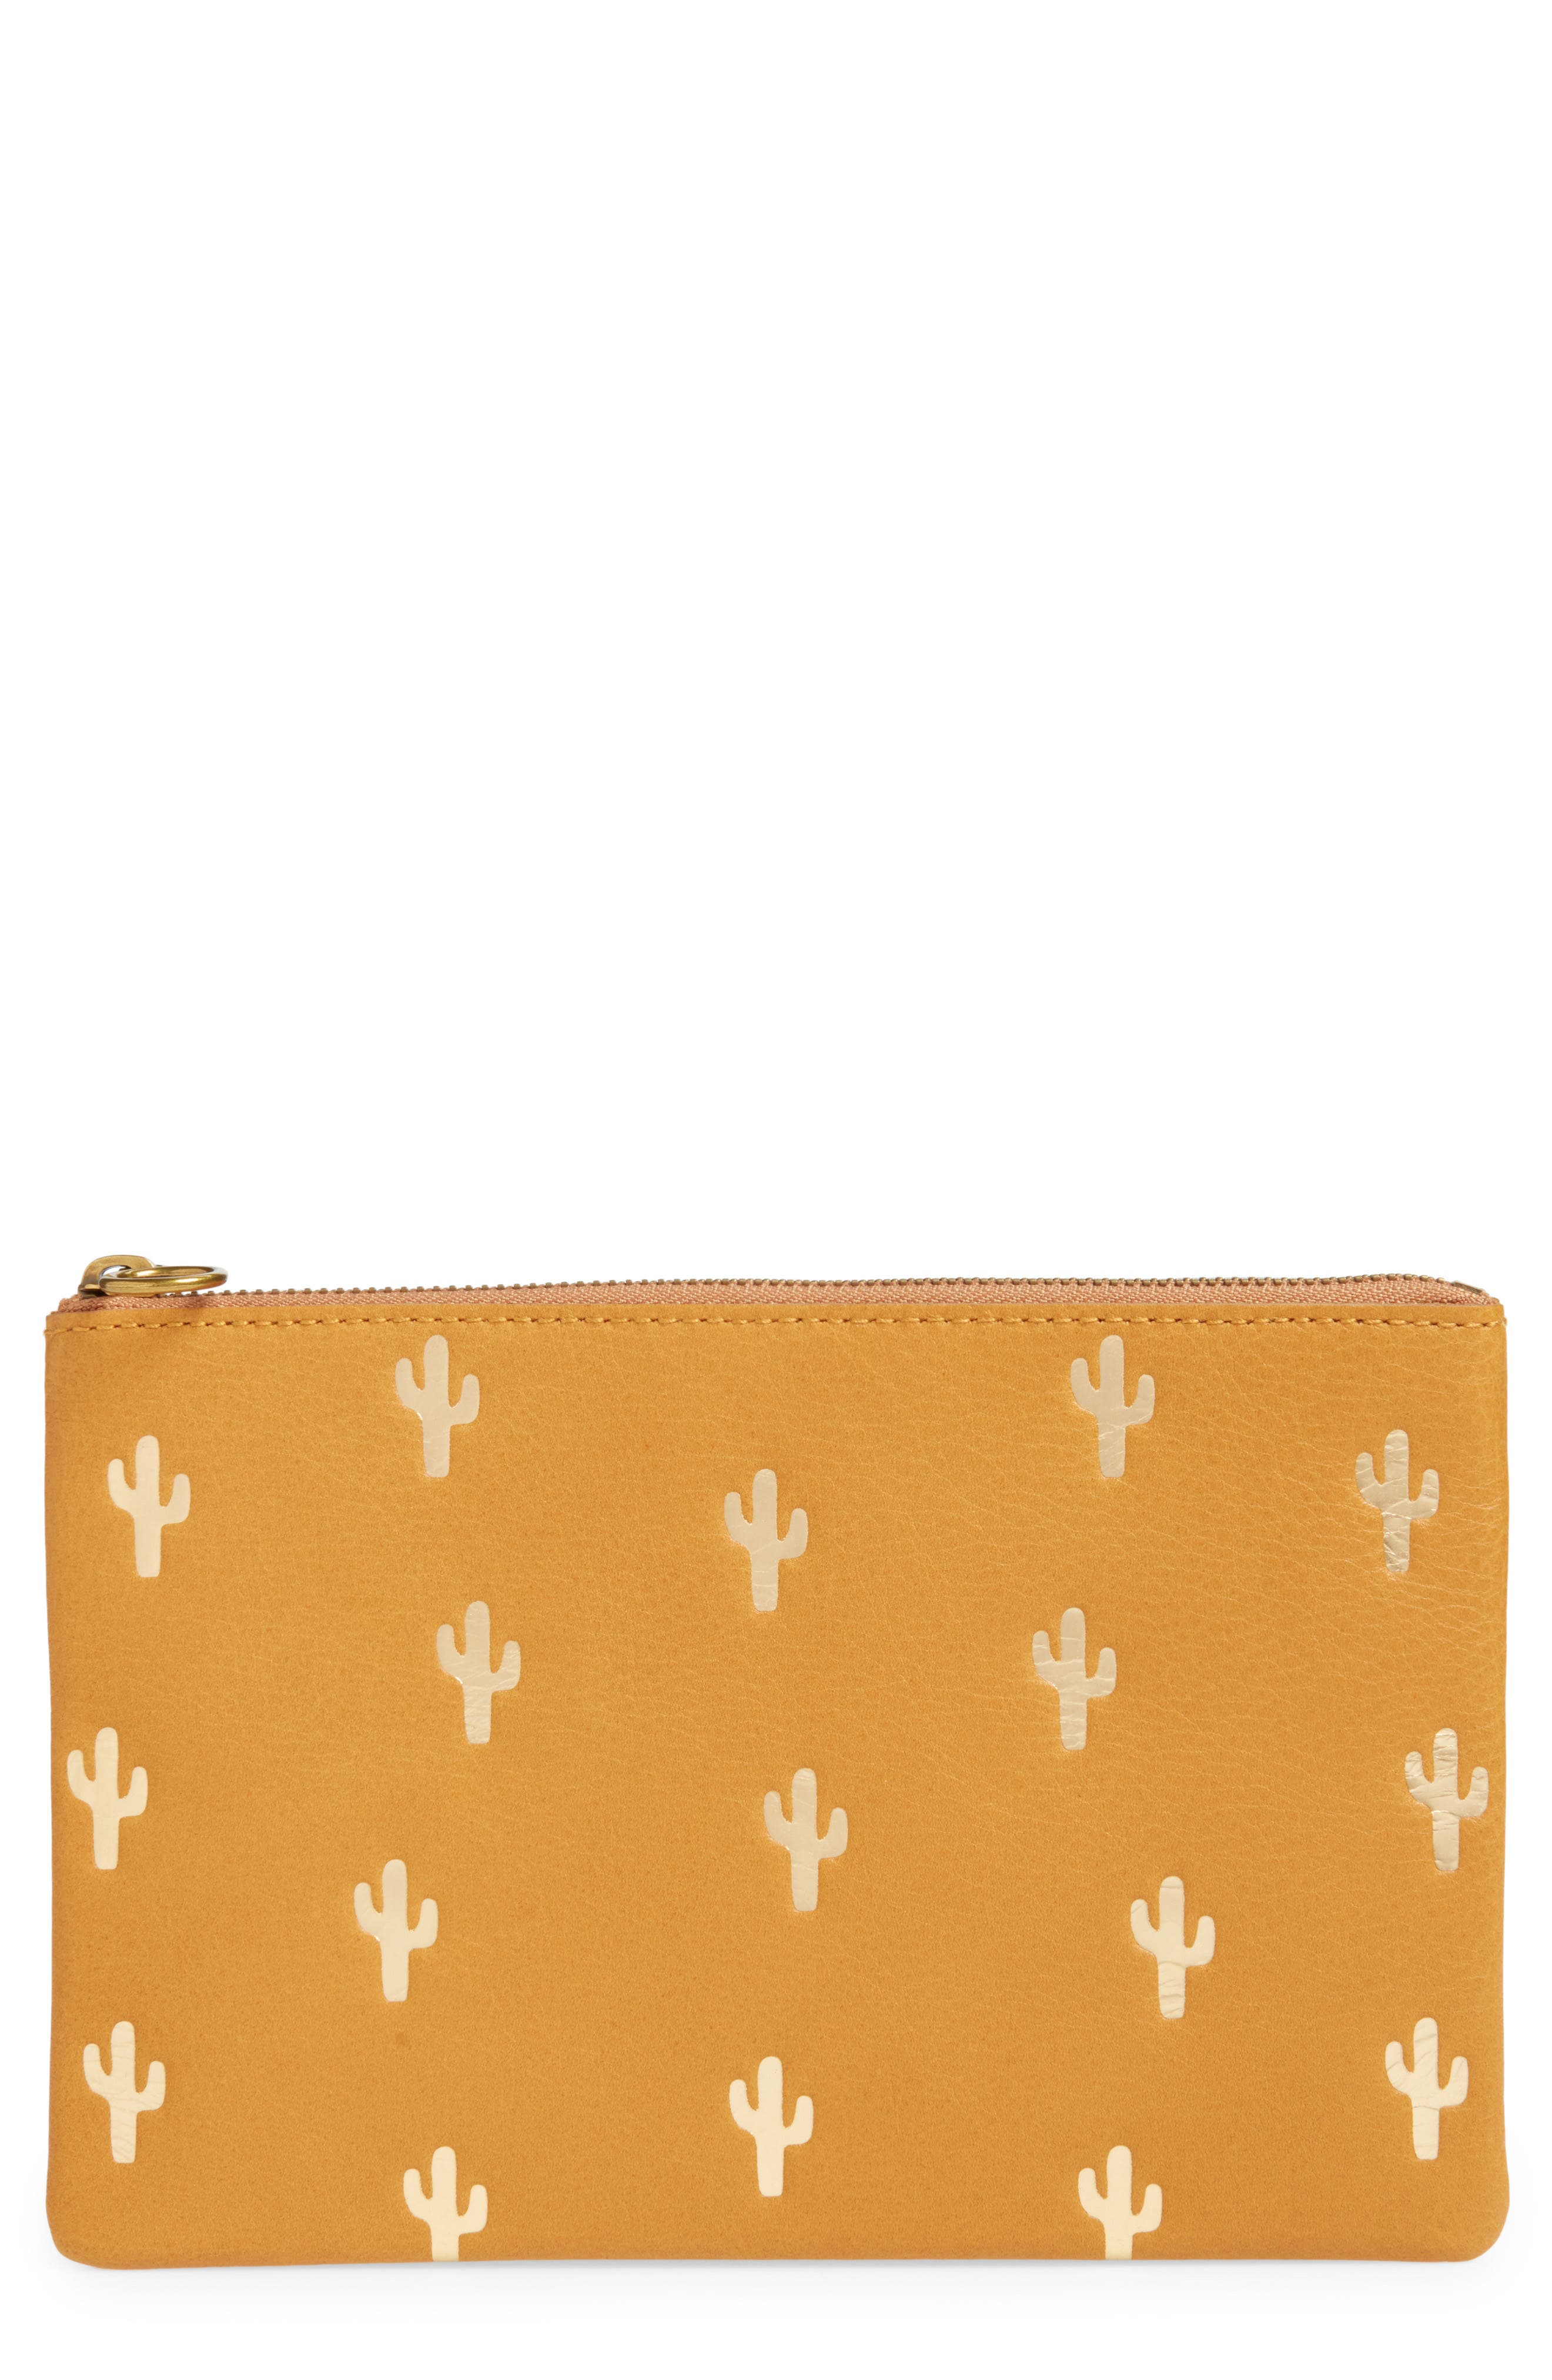 Madewell The Leather Pouch Clutch: Embossed Cactus Edition